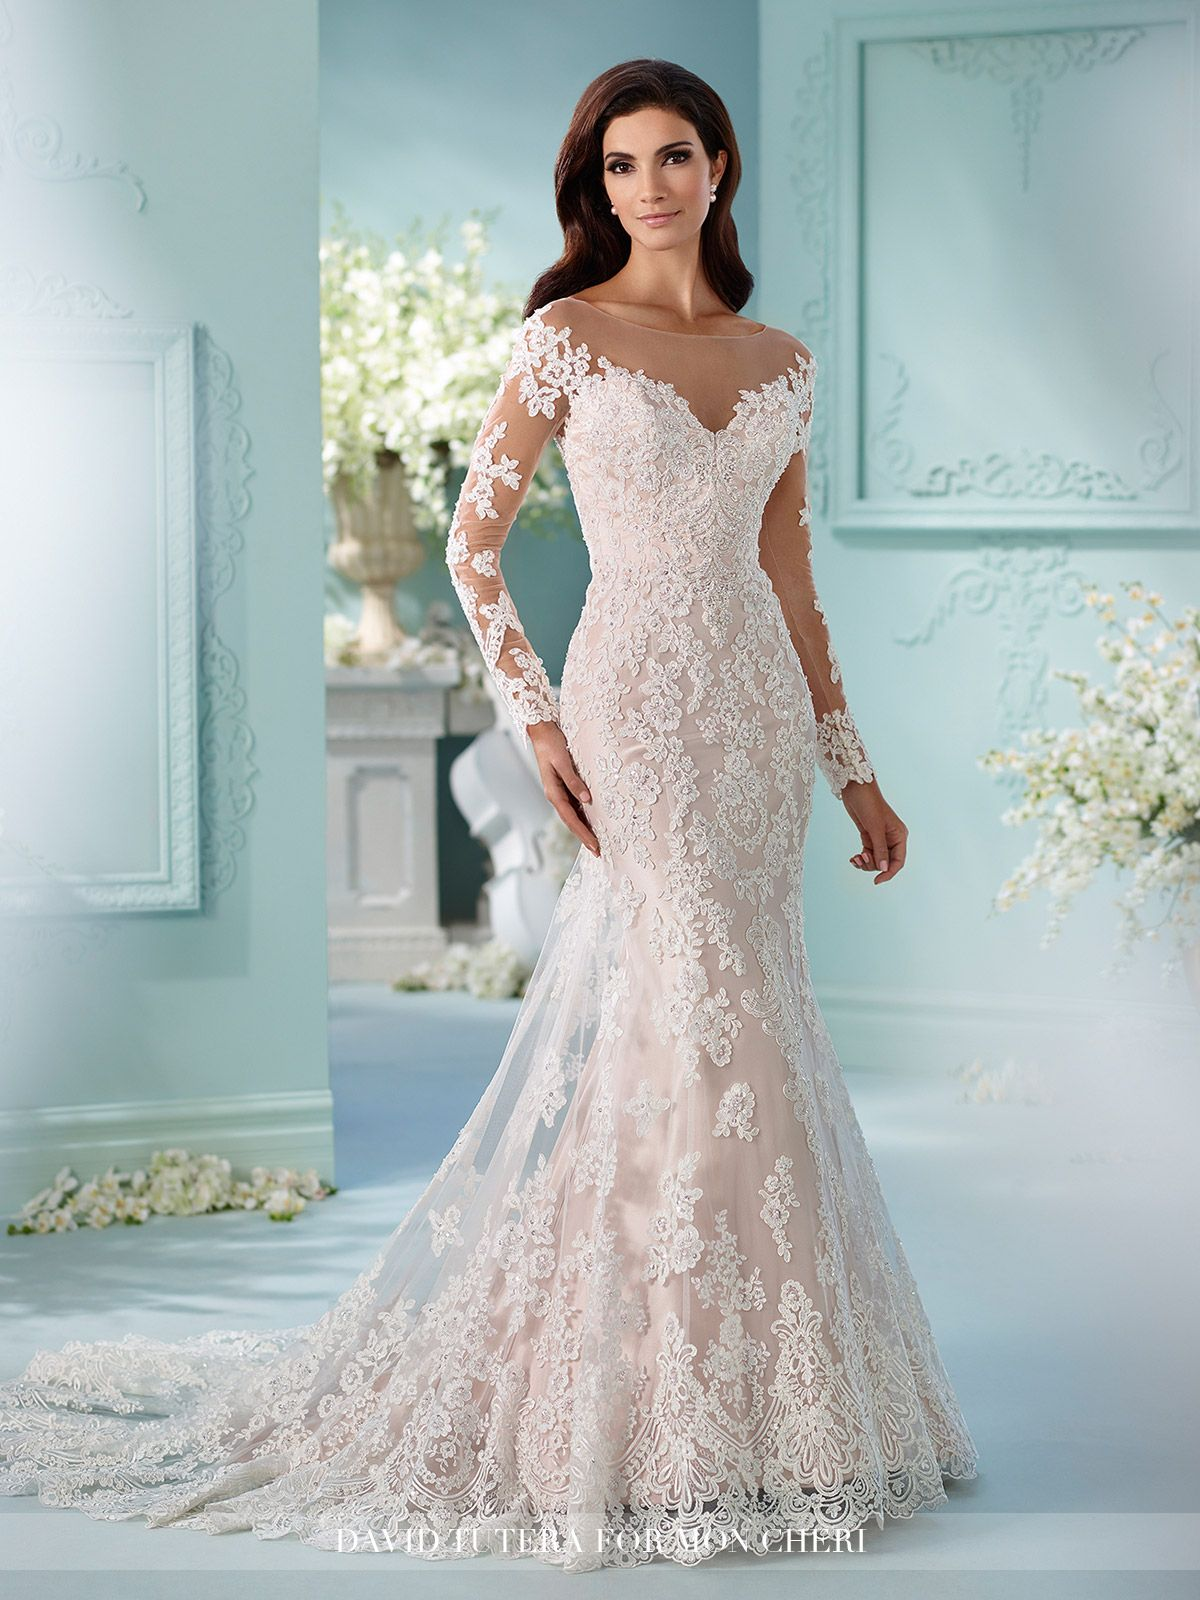 wedding dress long sleeve Tulle over satin fit and flare cage dress with hand beaded Alencon lace appliques Sleeve Wedding